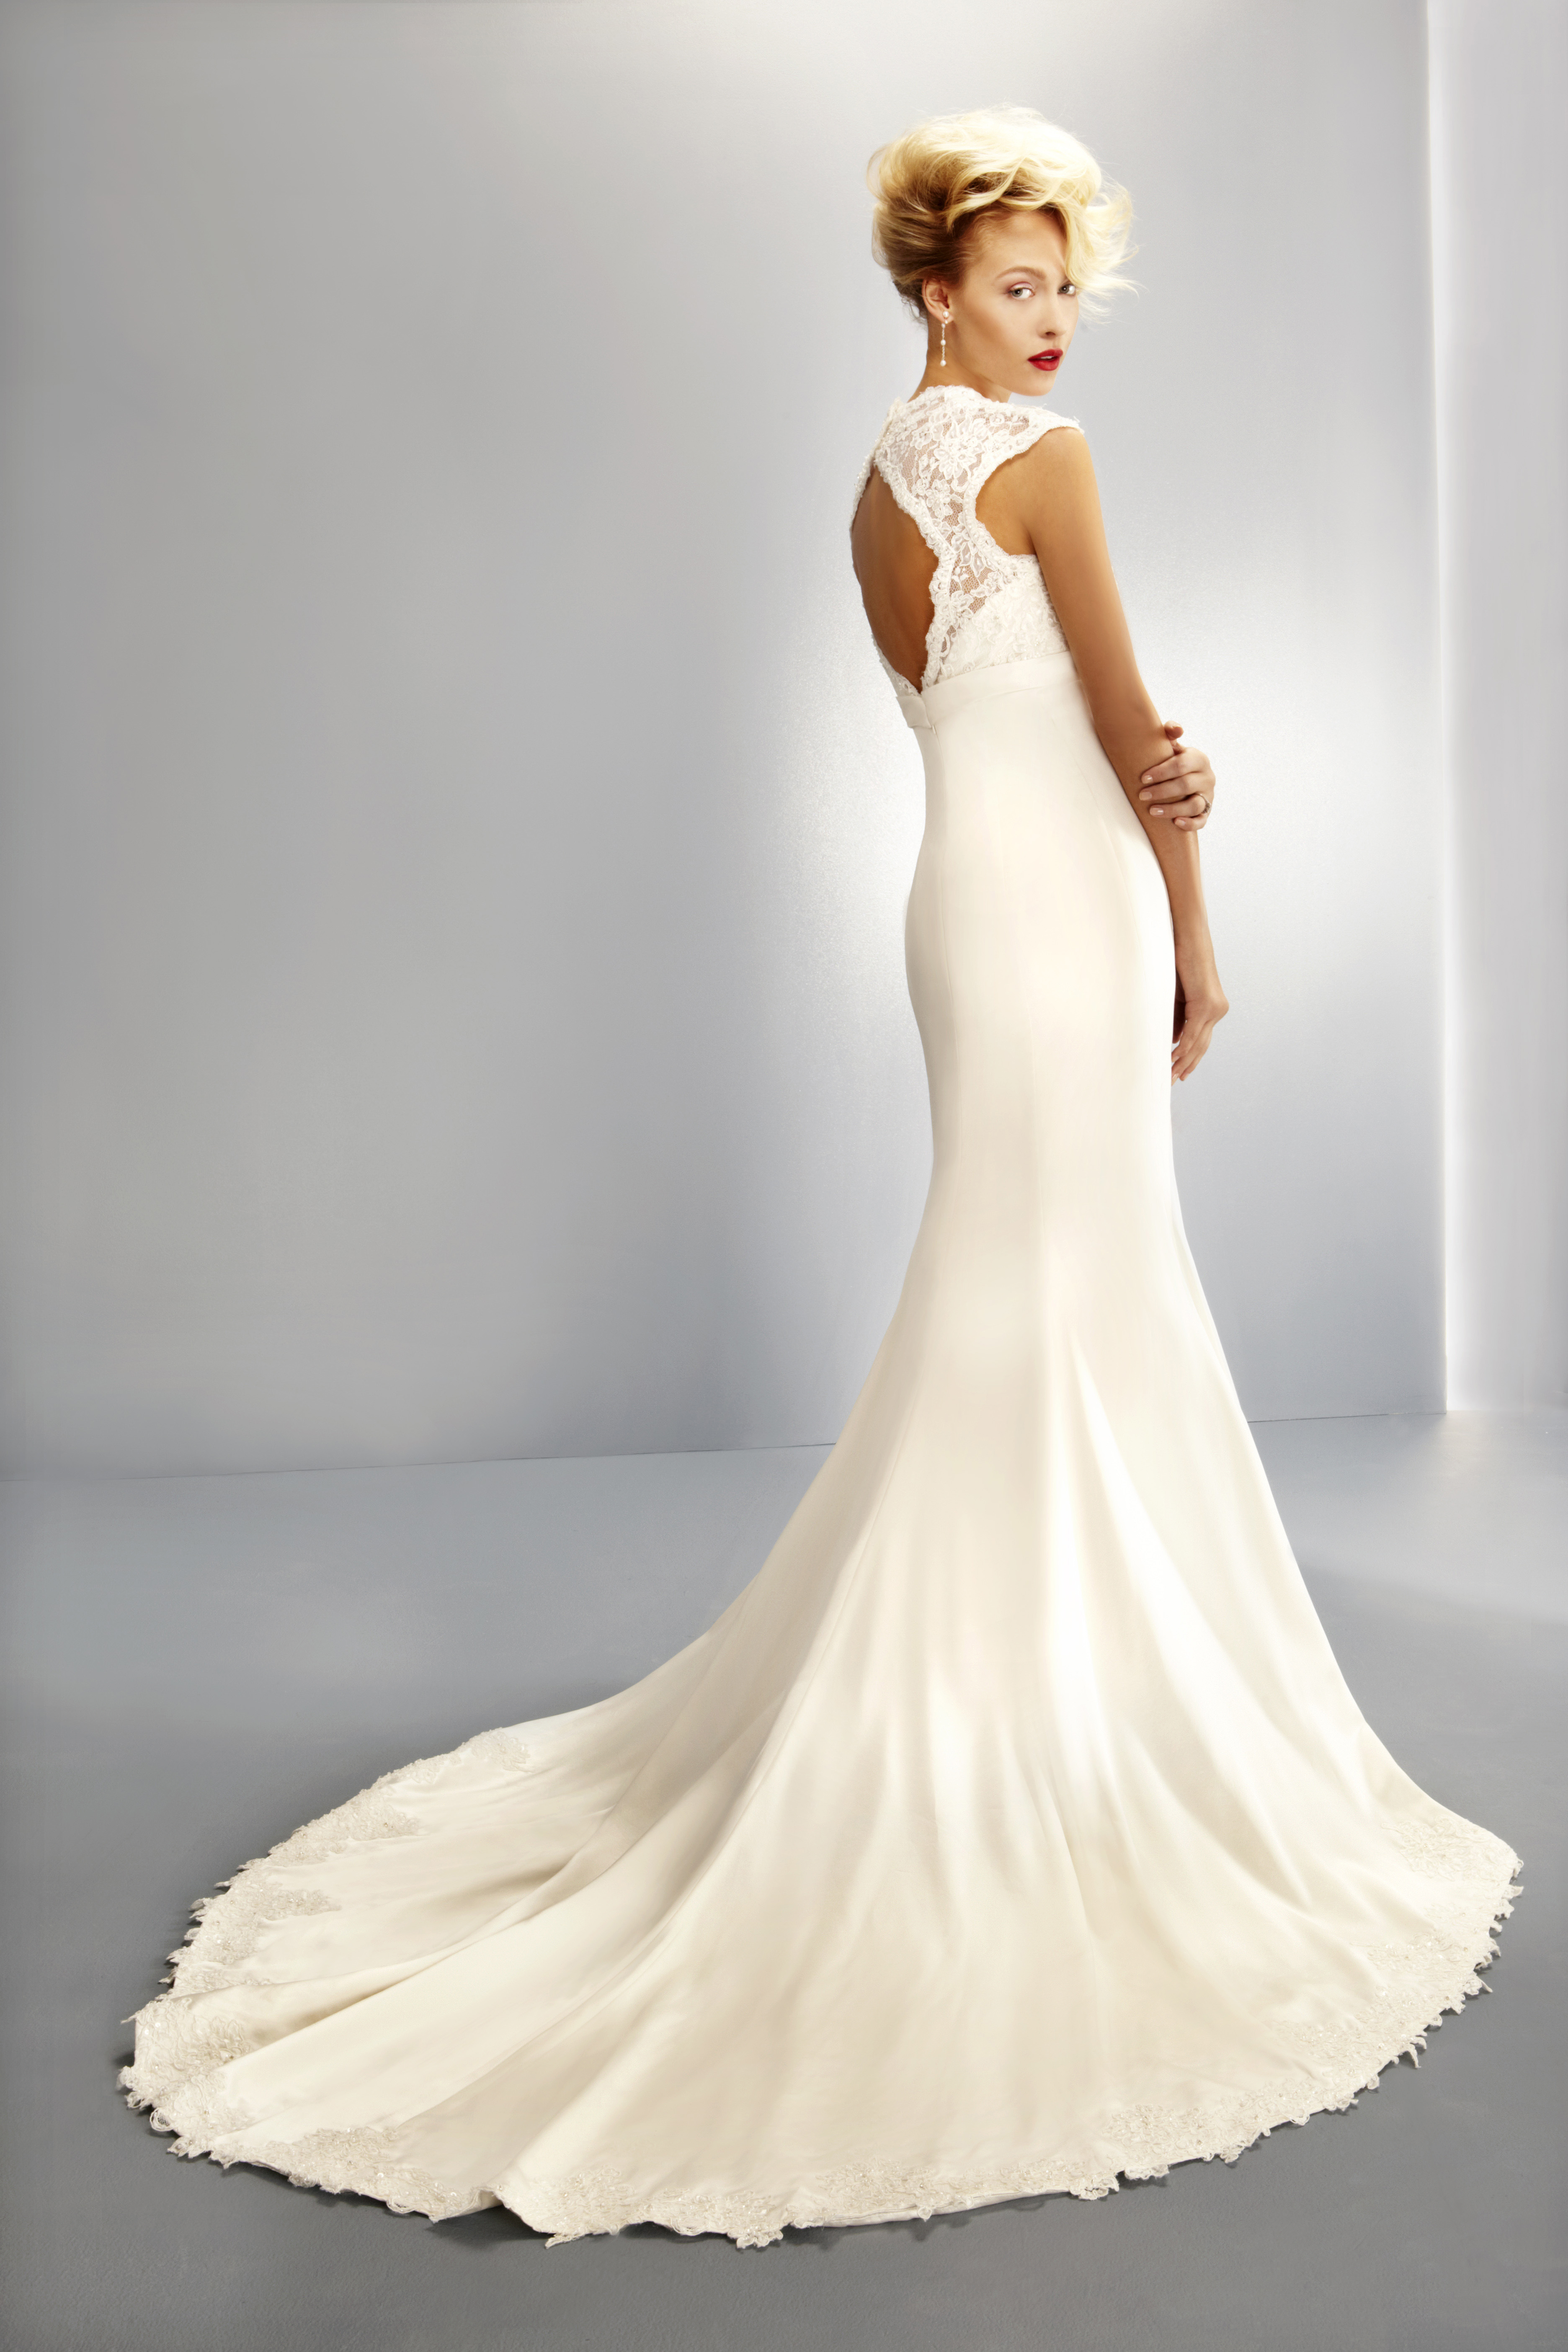 UK Bridal Industry eBay Auction In Aid of DEC Ebola Crisis Appeal